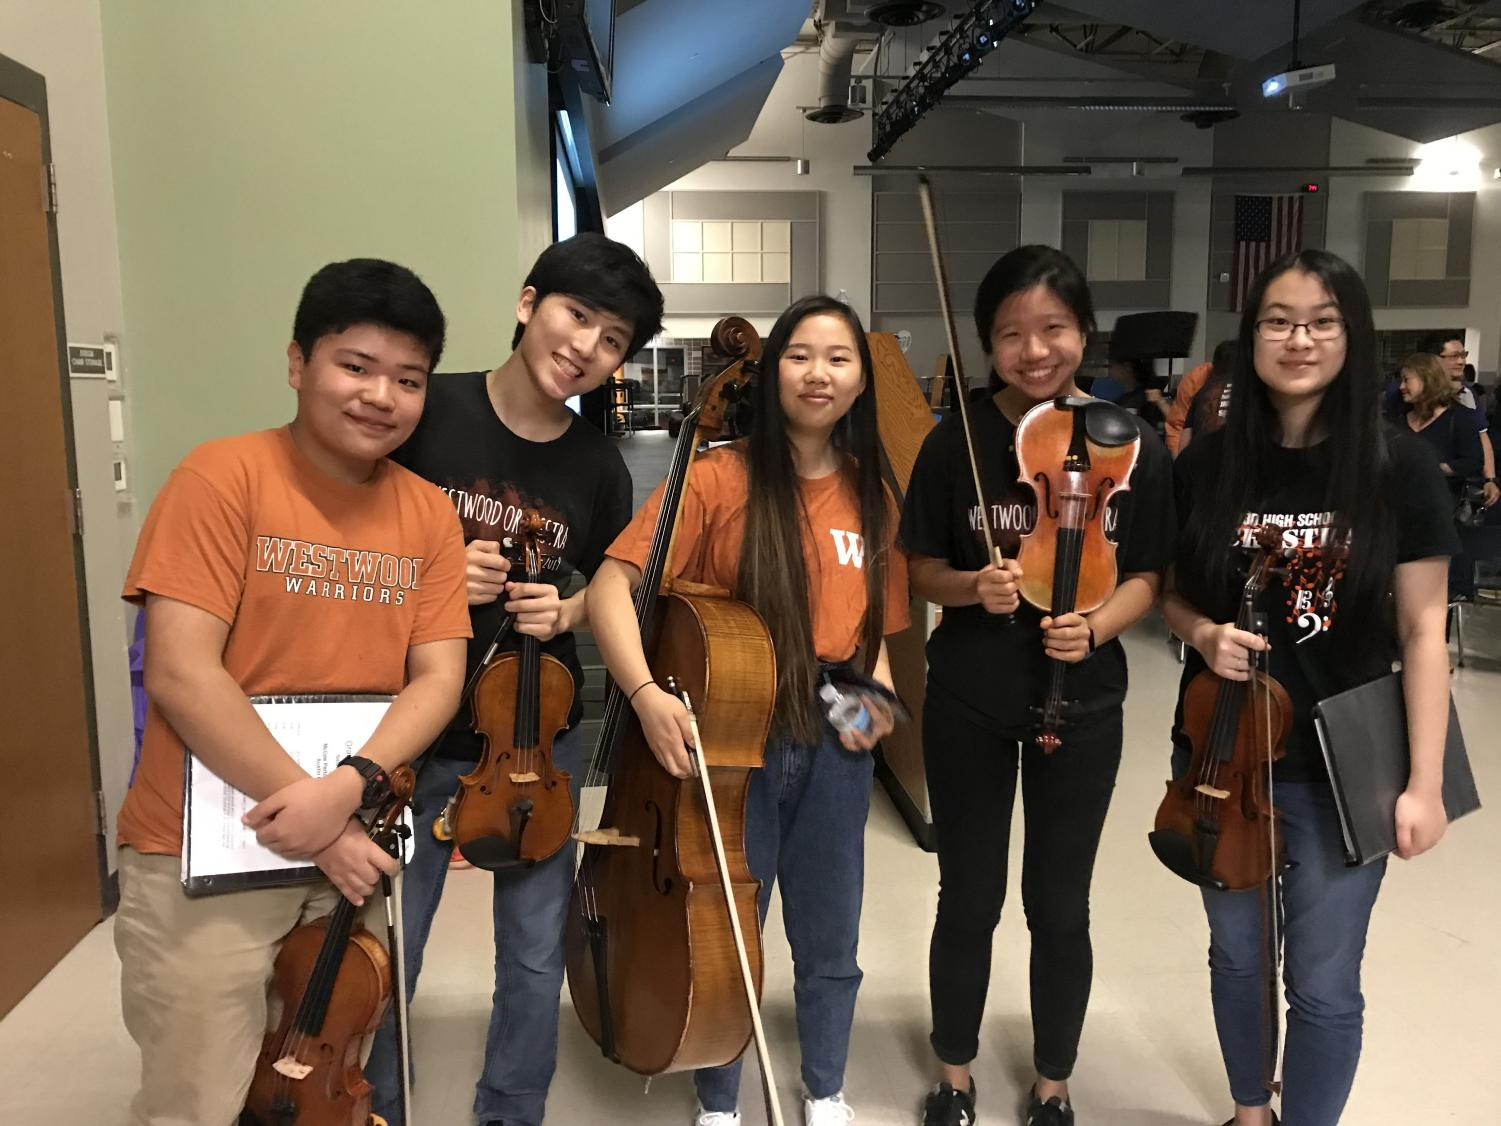 Sophomores+Elliot+Kim%2C+Edward+Seo%2C+Erin+Zhang%2C+Anna+Chiu%2C+and+Hannah+Liu+pose+together+after+their+orchestra+concert.+